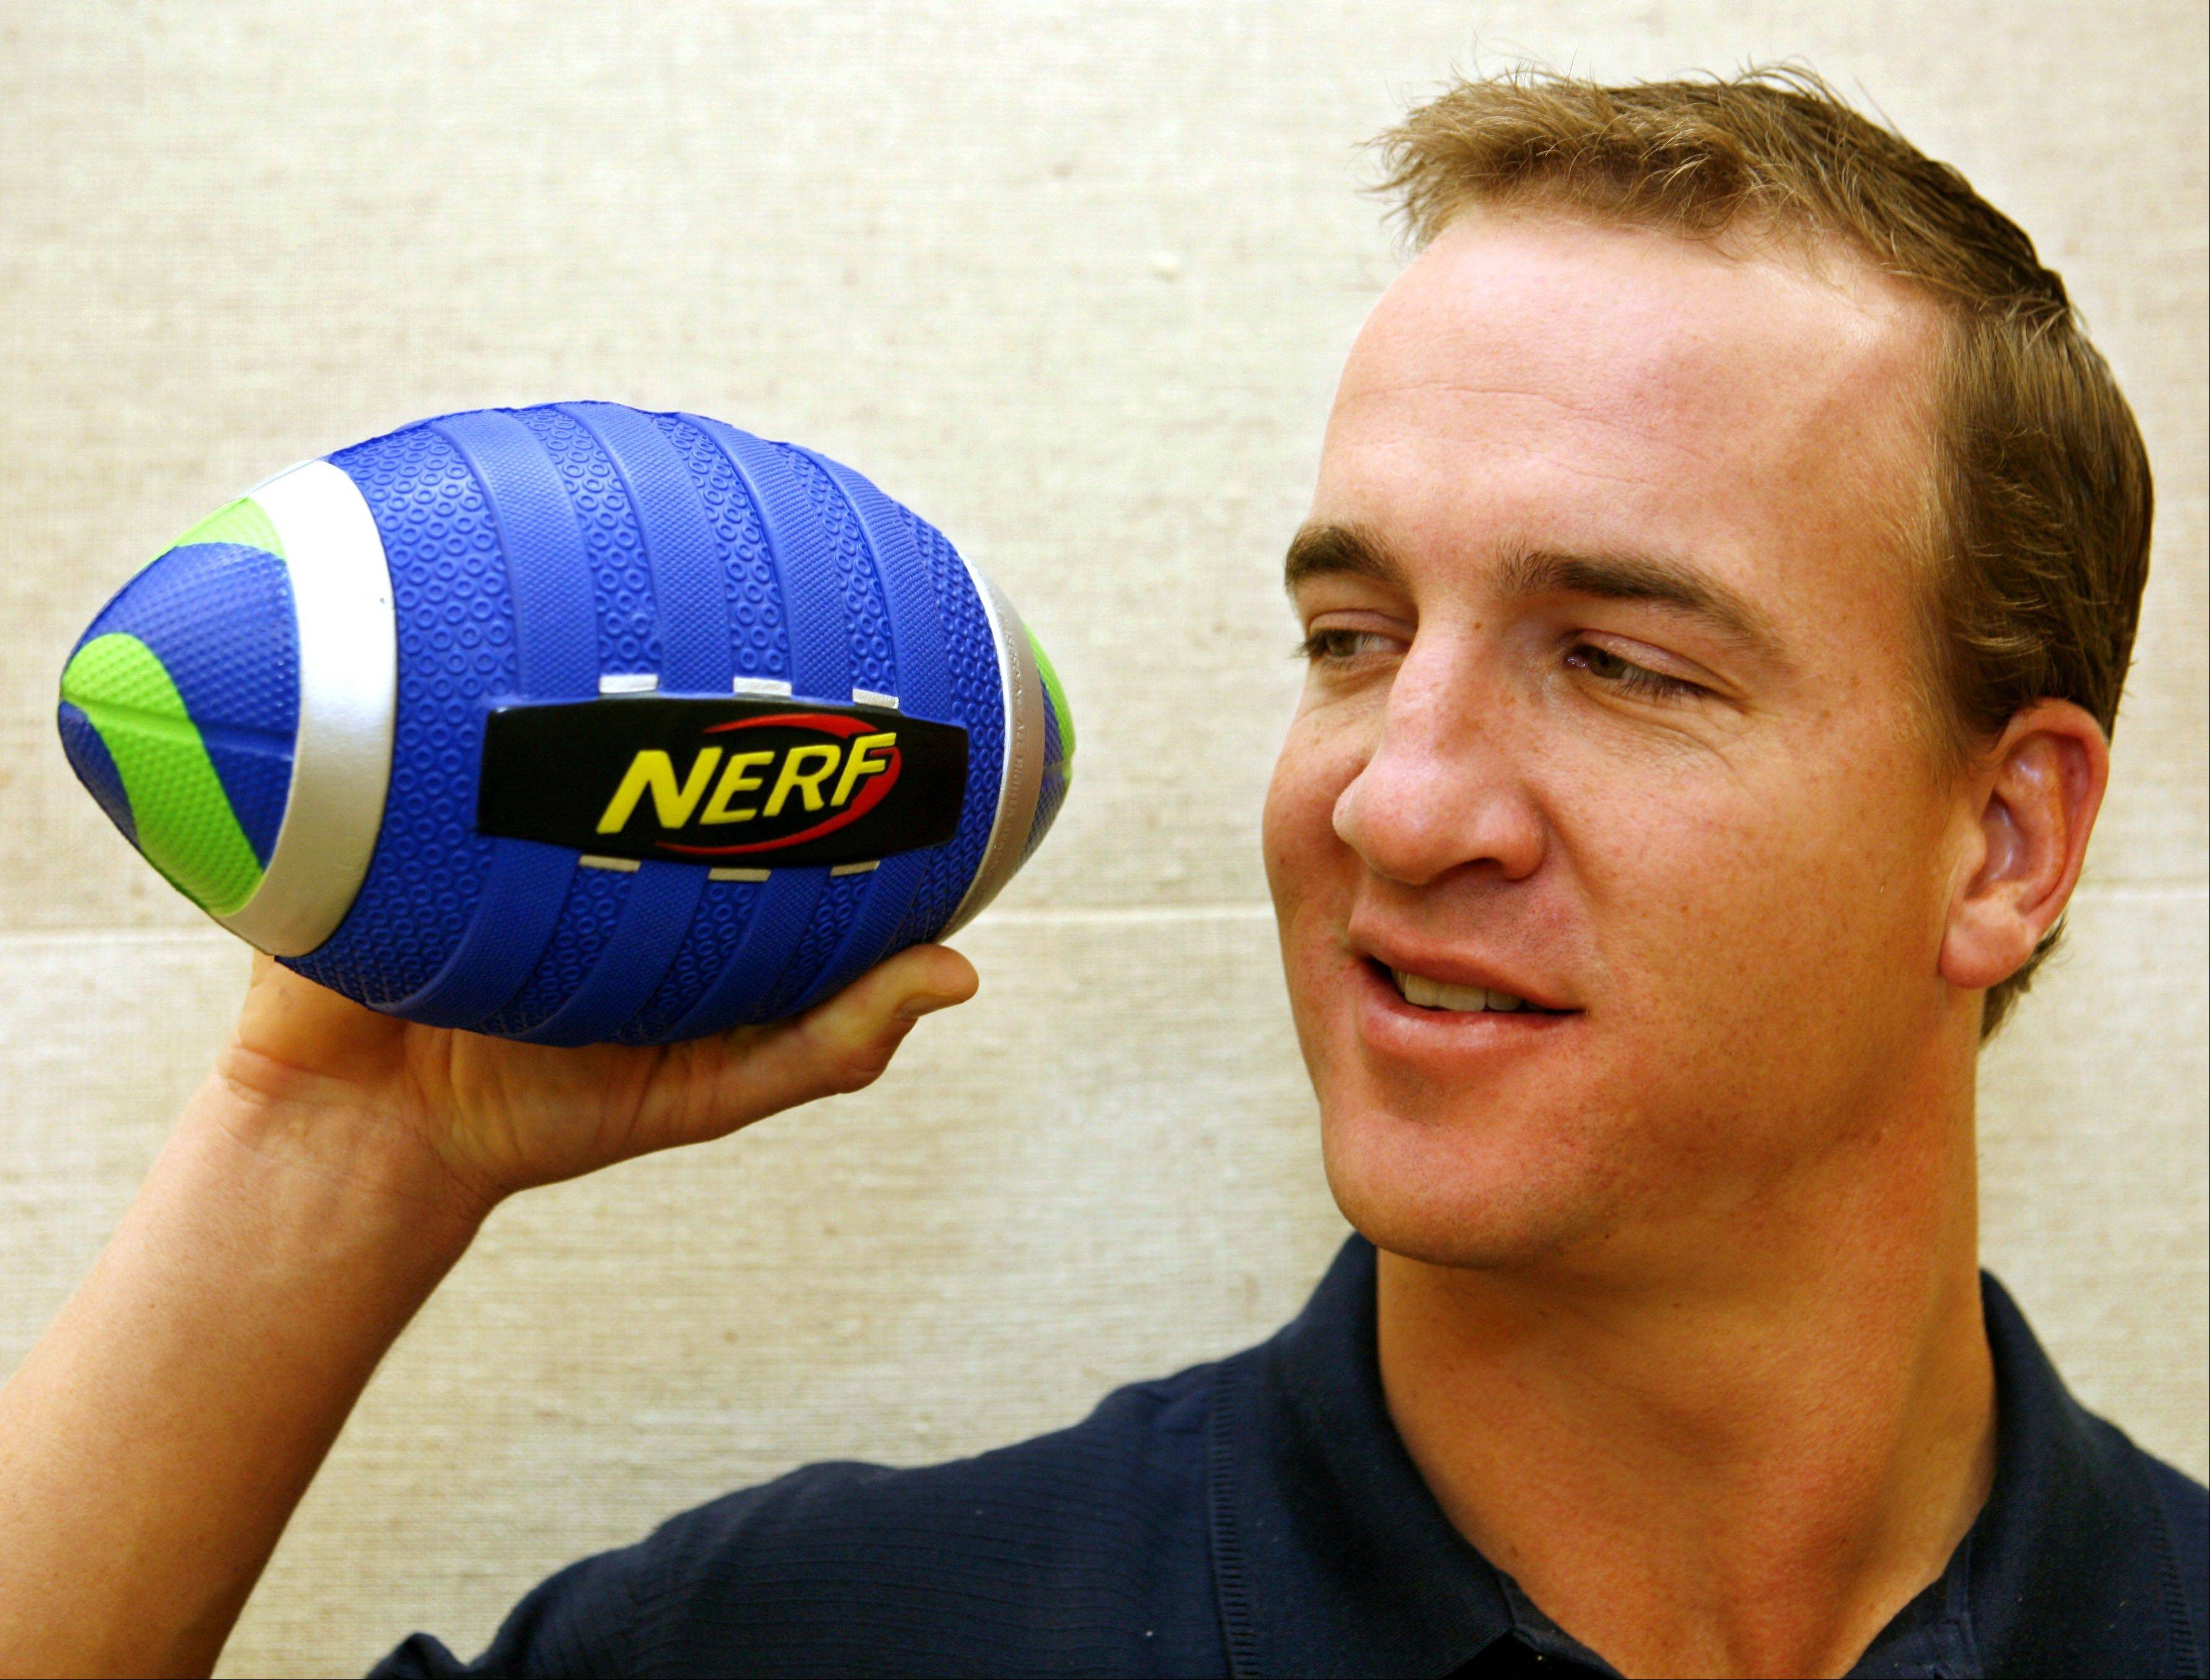 Did star NFL quarterback Peyton Manning toss a Nerf football as he grew up? He's seen here with a model named after him. Nerf toys may are among the 12 finalists for the National Toy Hall of Fame.